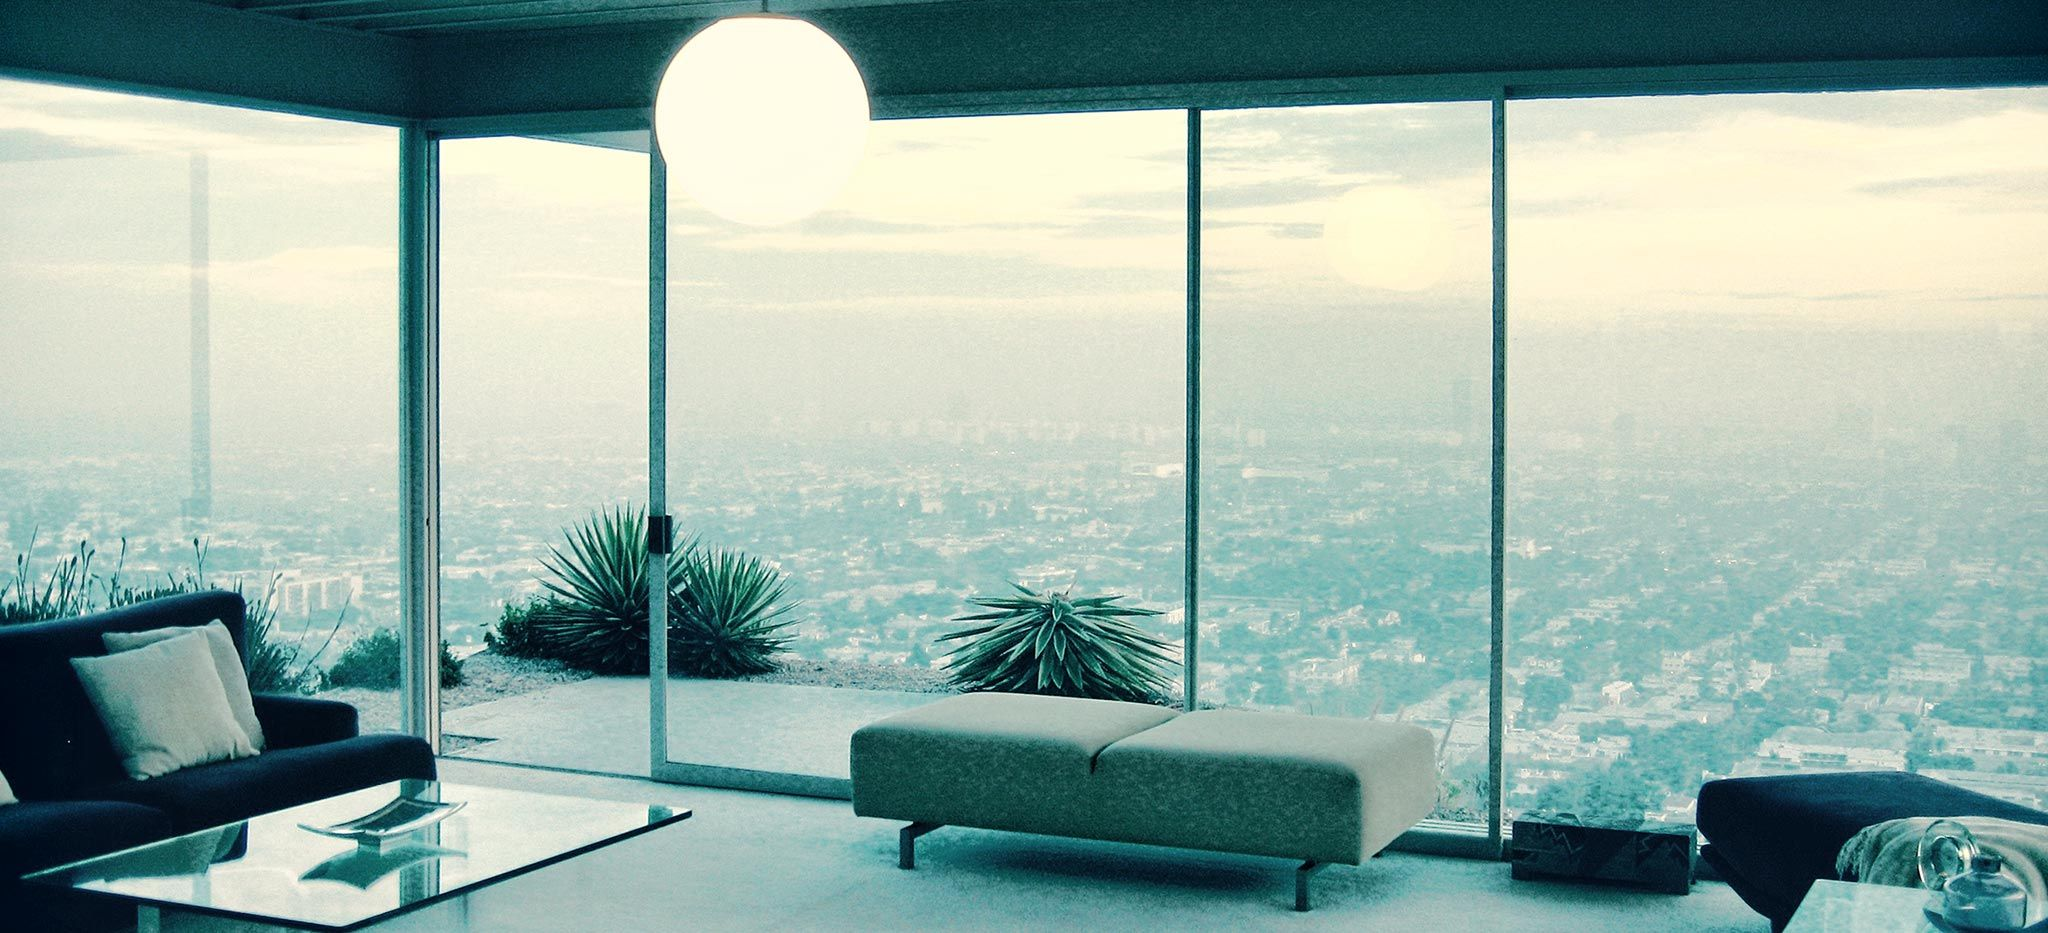 Modern homes los angeles brentwood untouched 1960 mid century modern - Home Mid Century Modern Homes Hollywood Hills Sunset Strip Real Estate